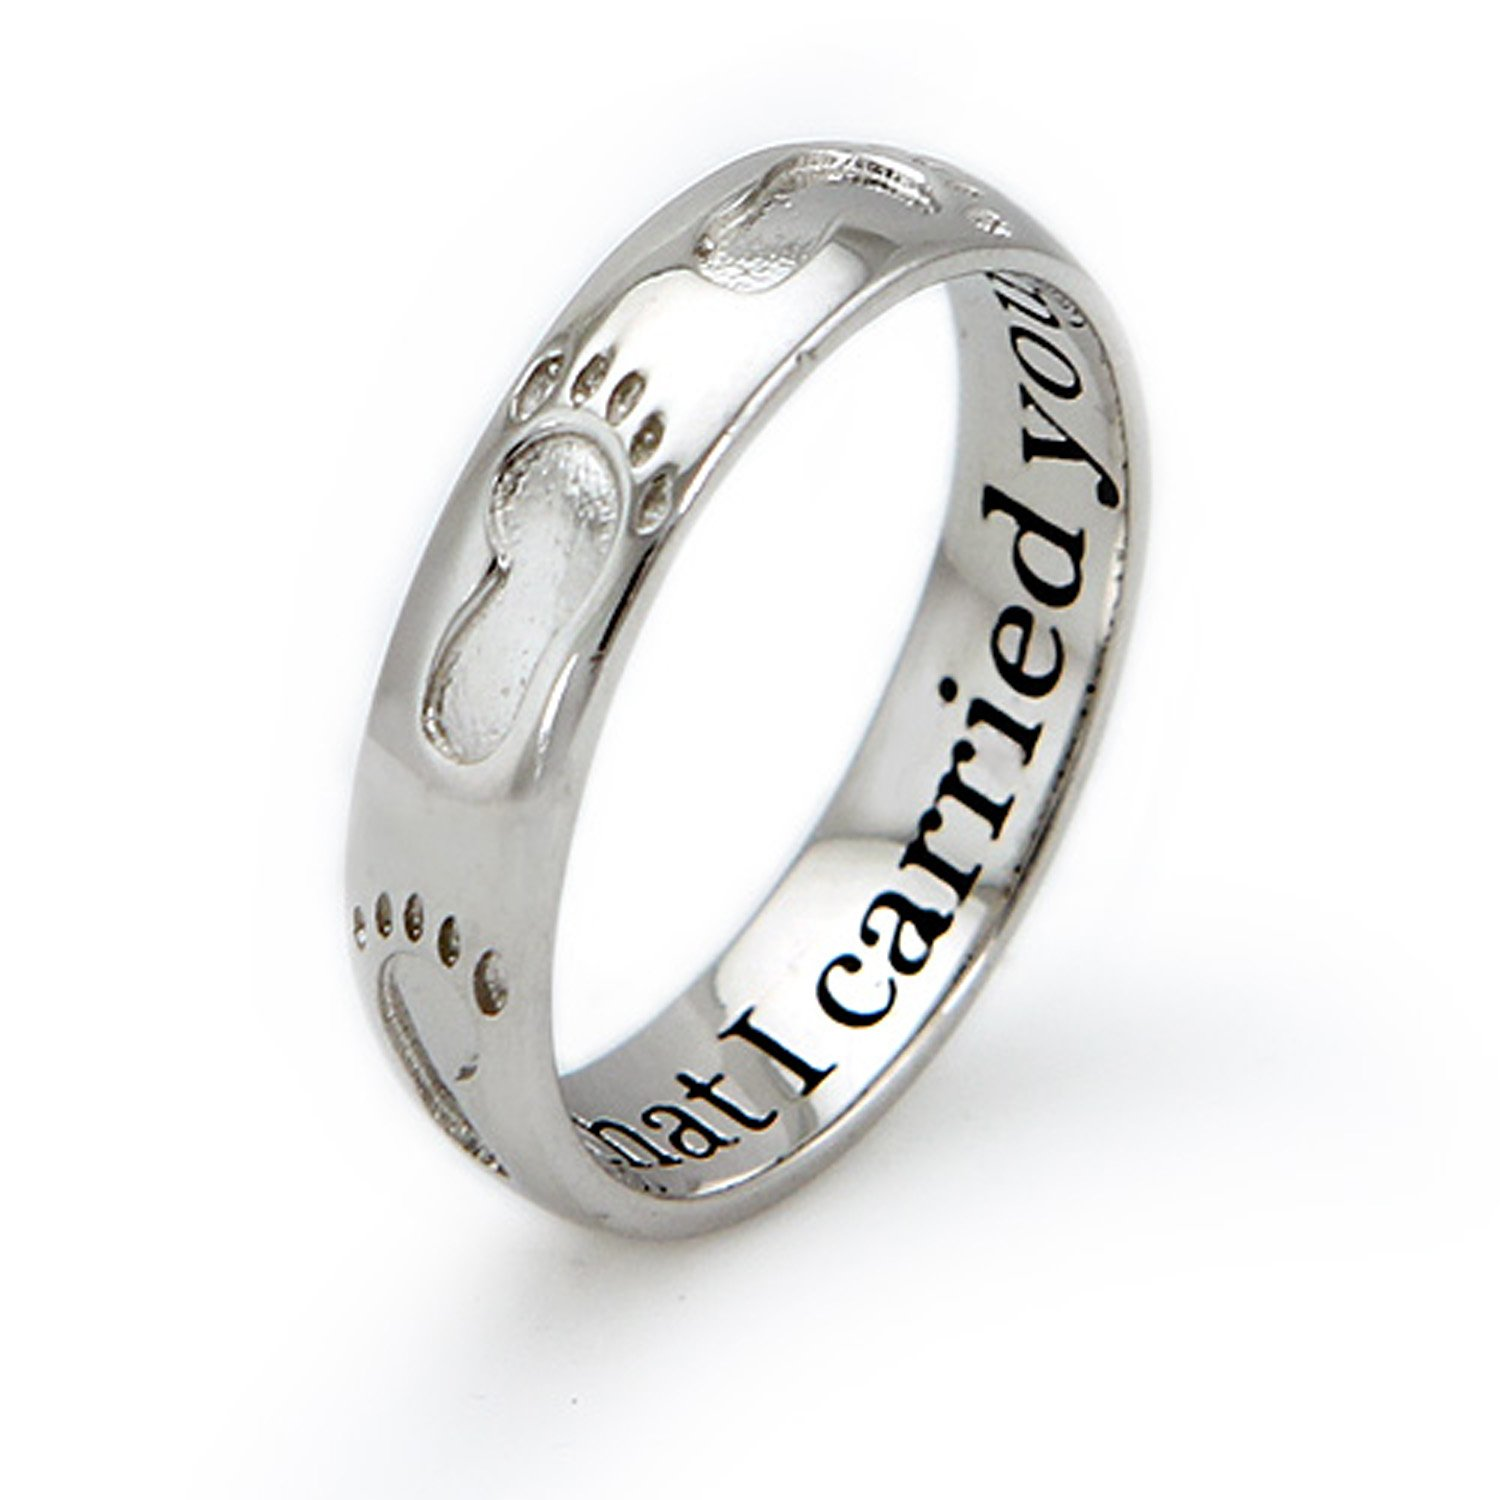 script gifts rings zoom rg ring between baby jewelry james footprint categories avery initial